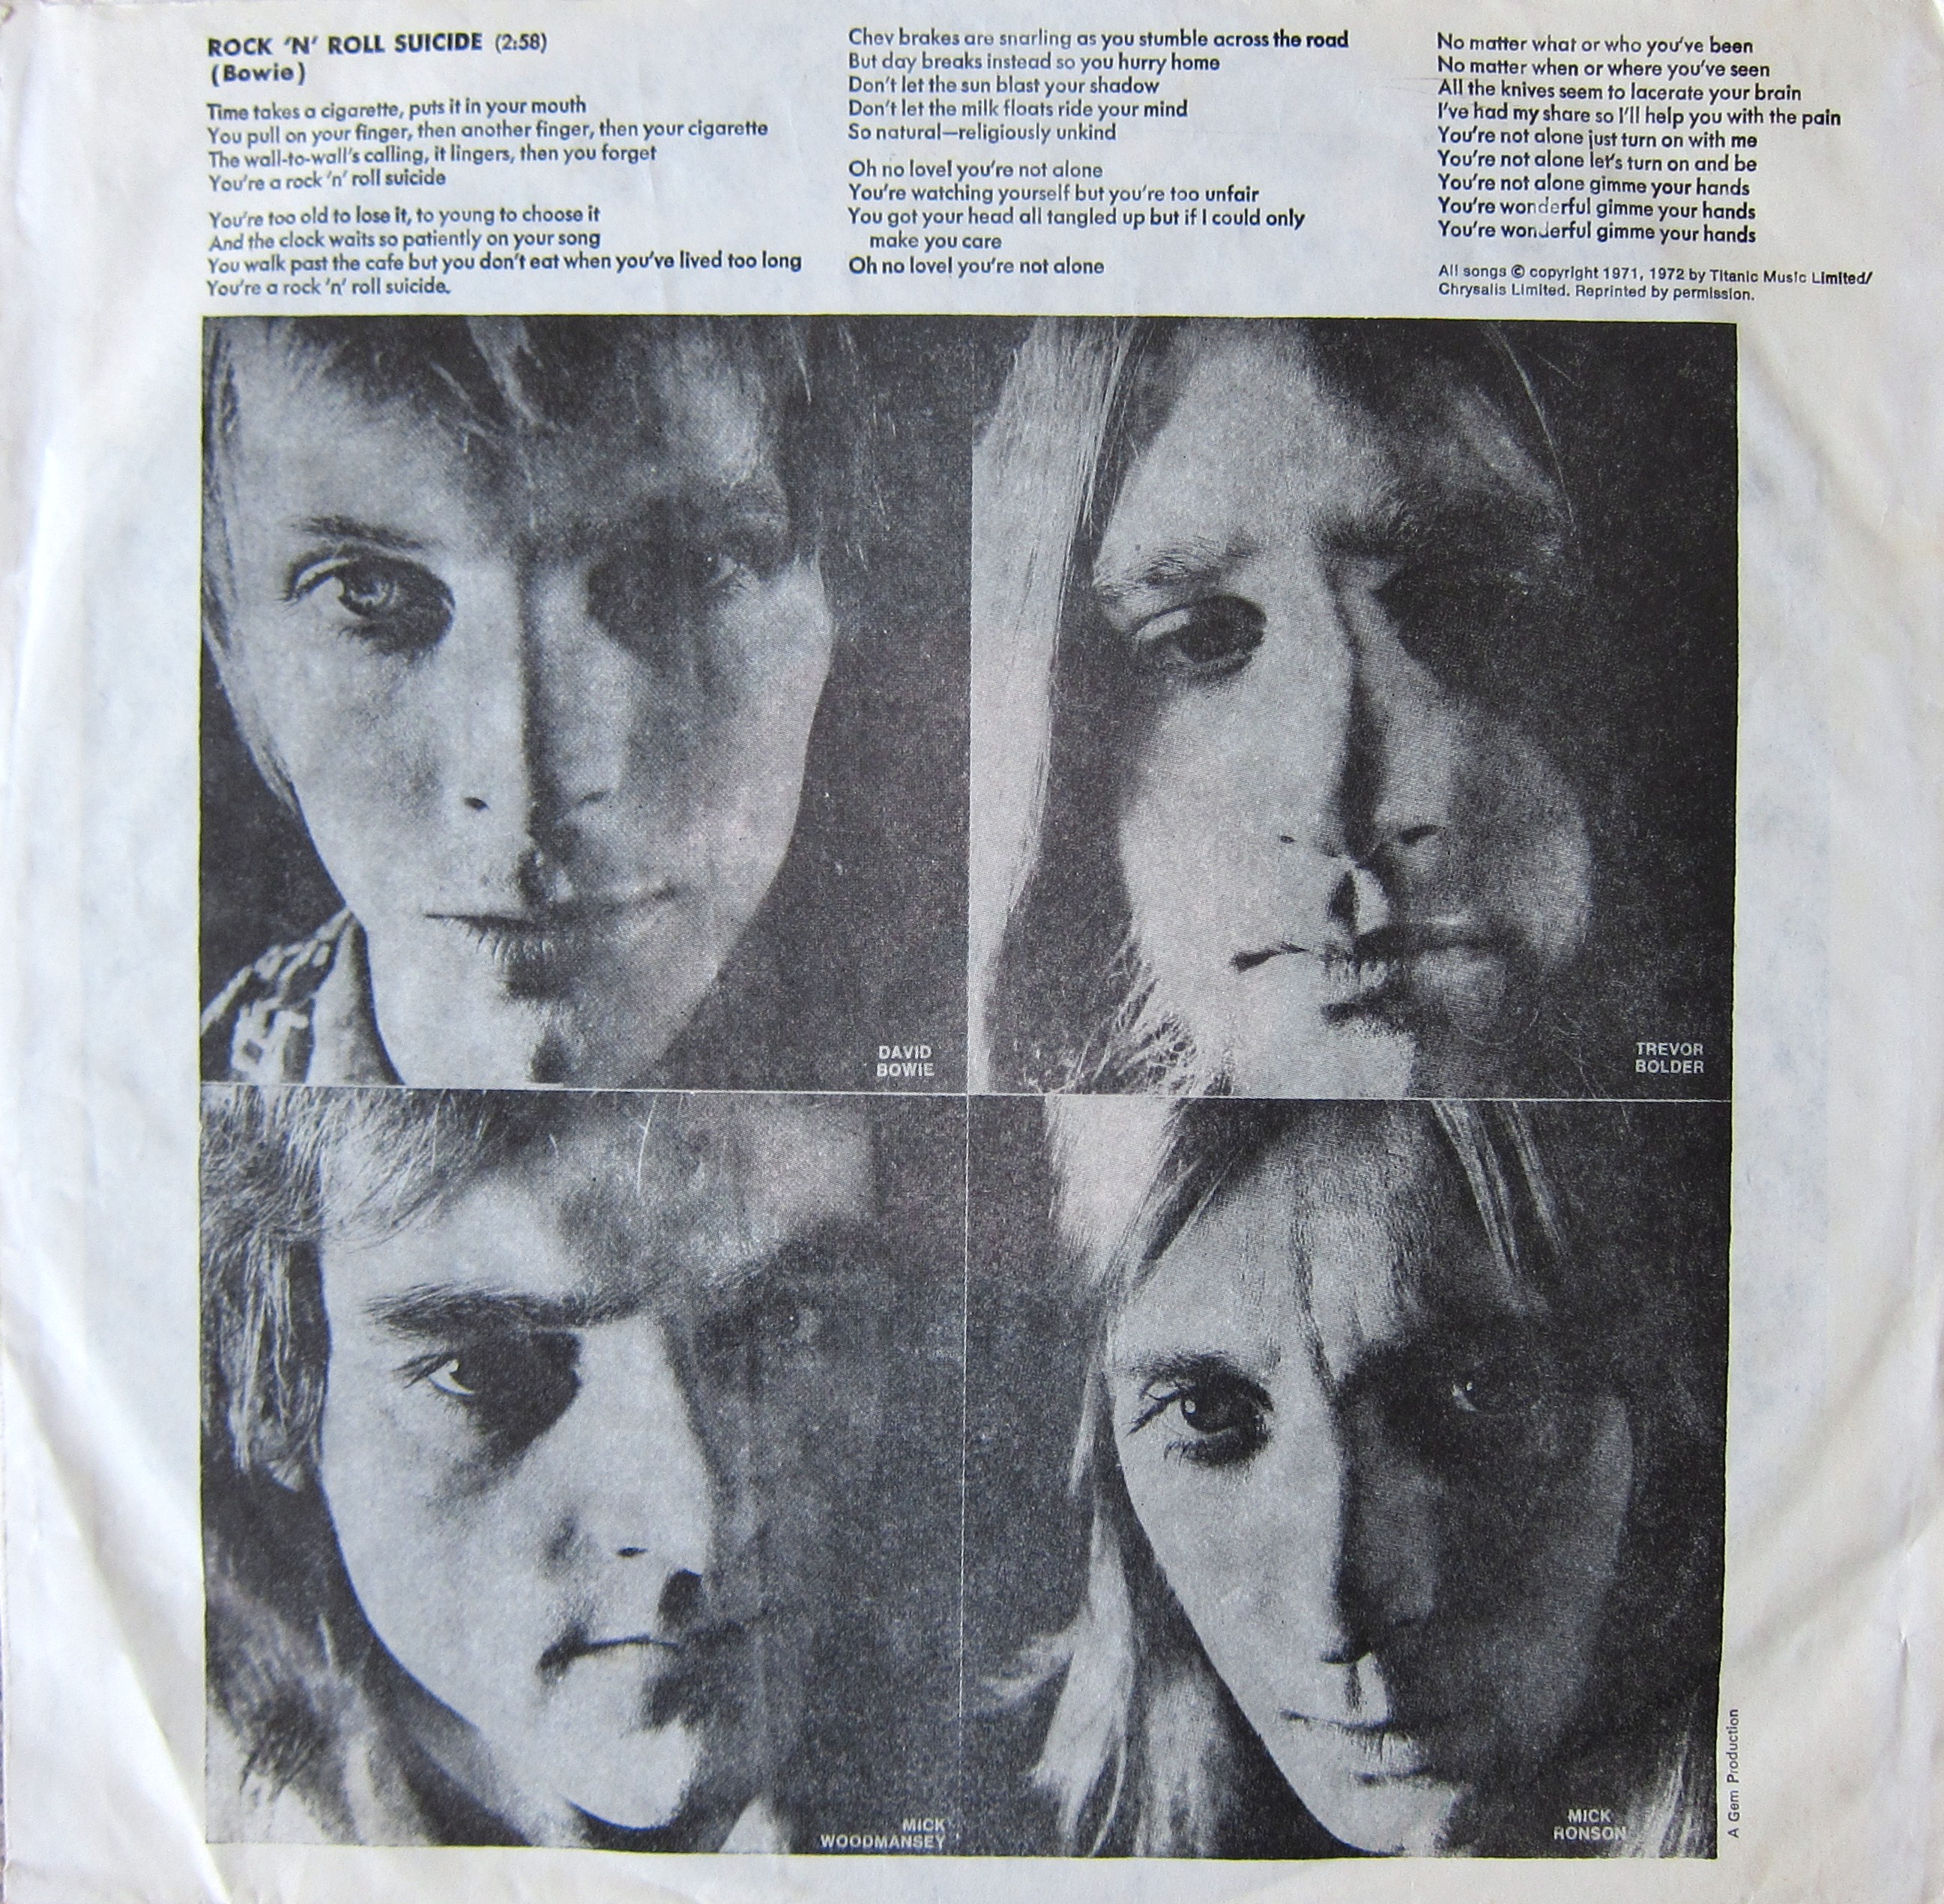 Bowie Ziggy Stardust record inner sleeve – Every record tells a story